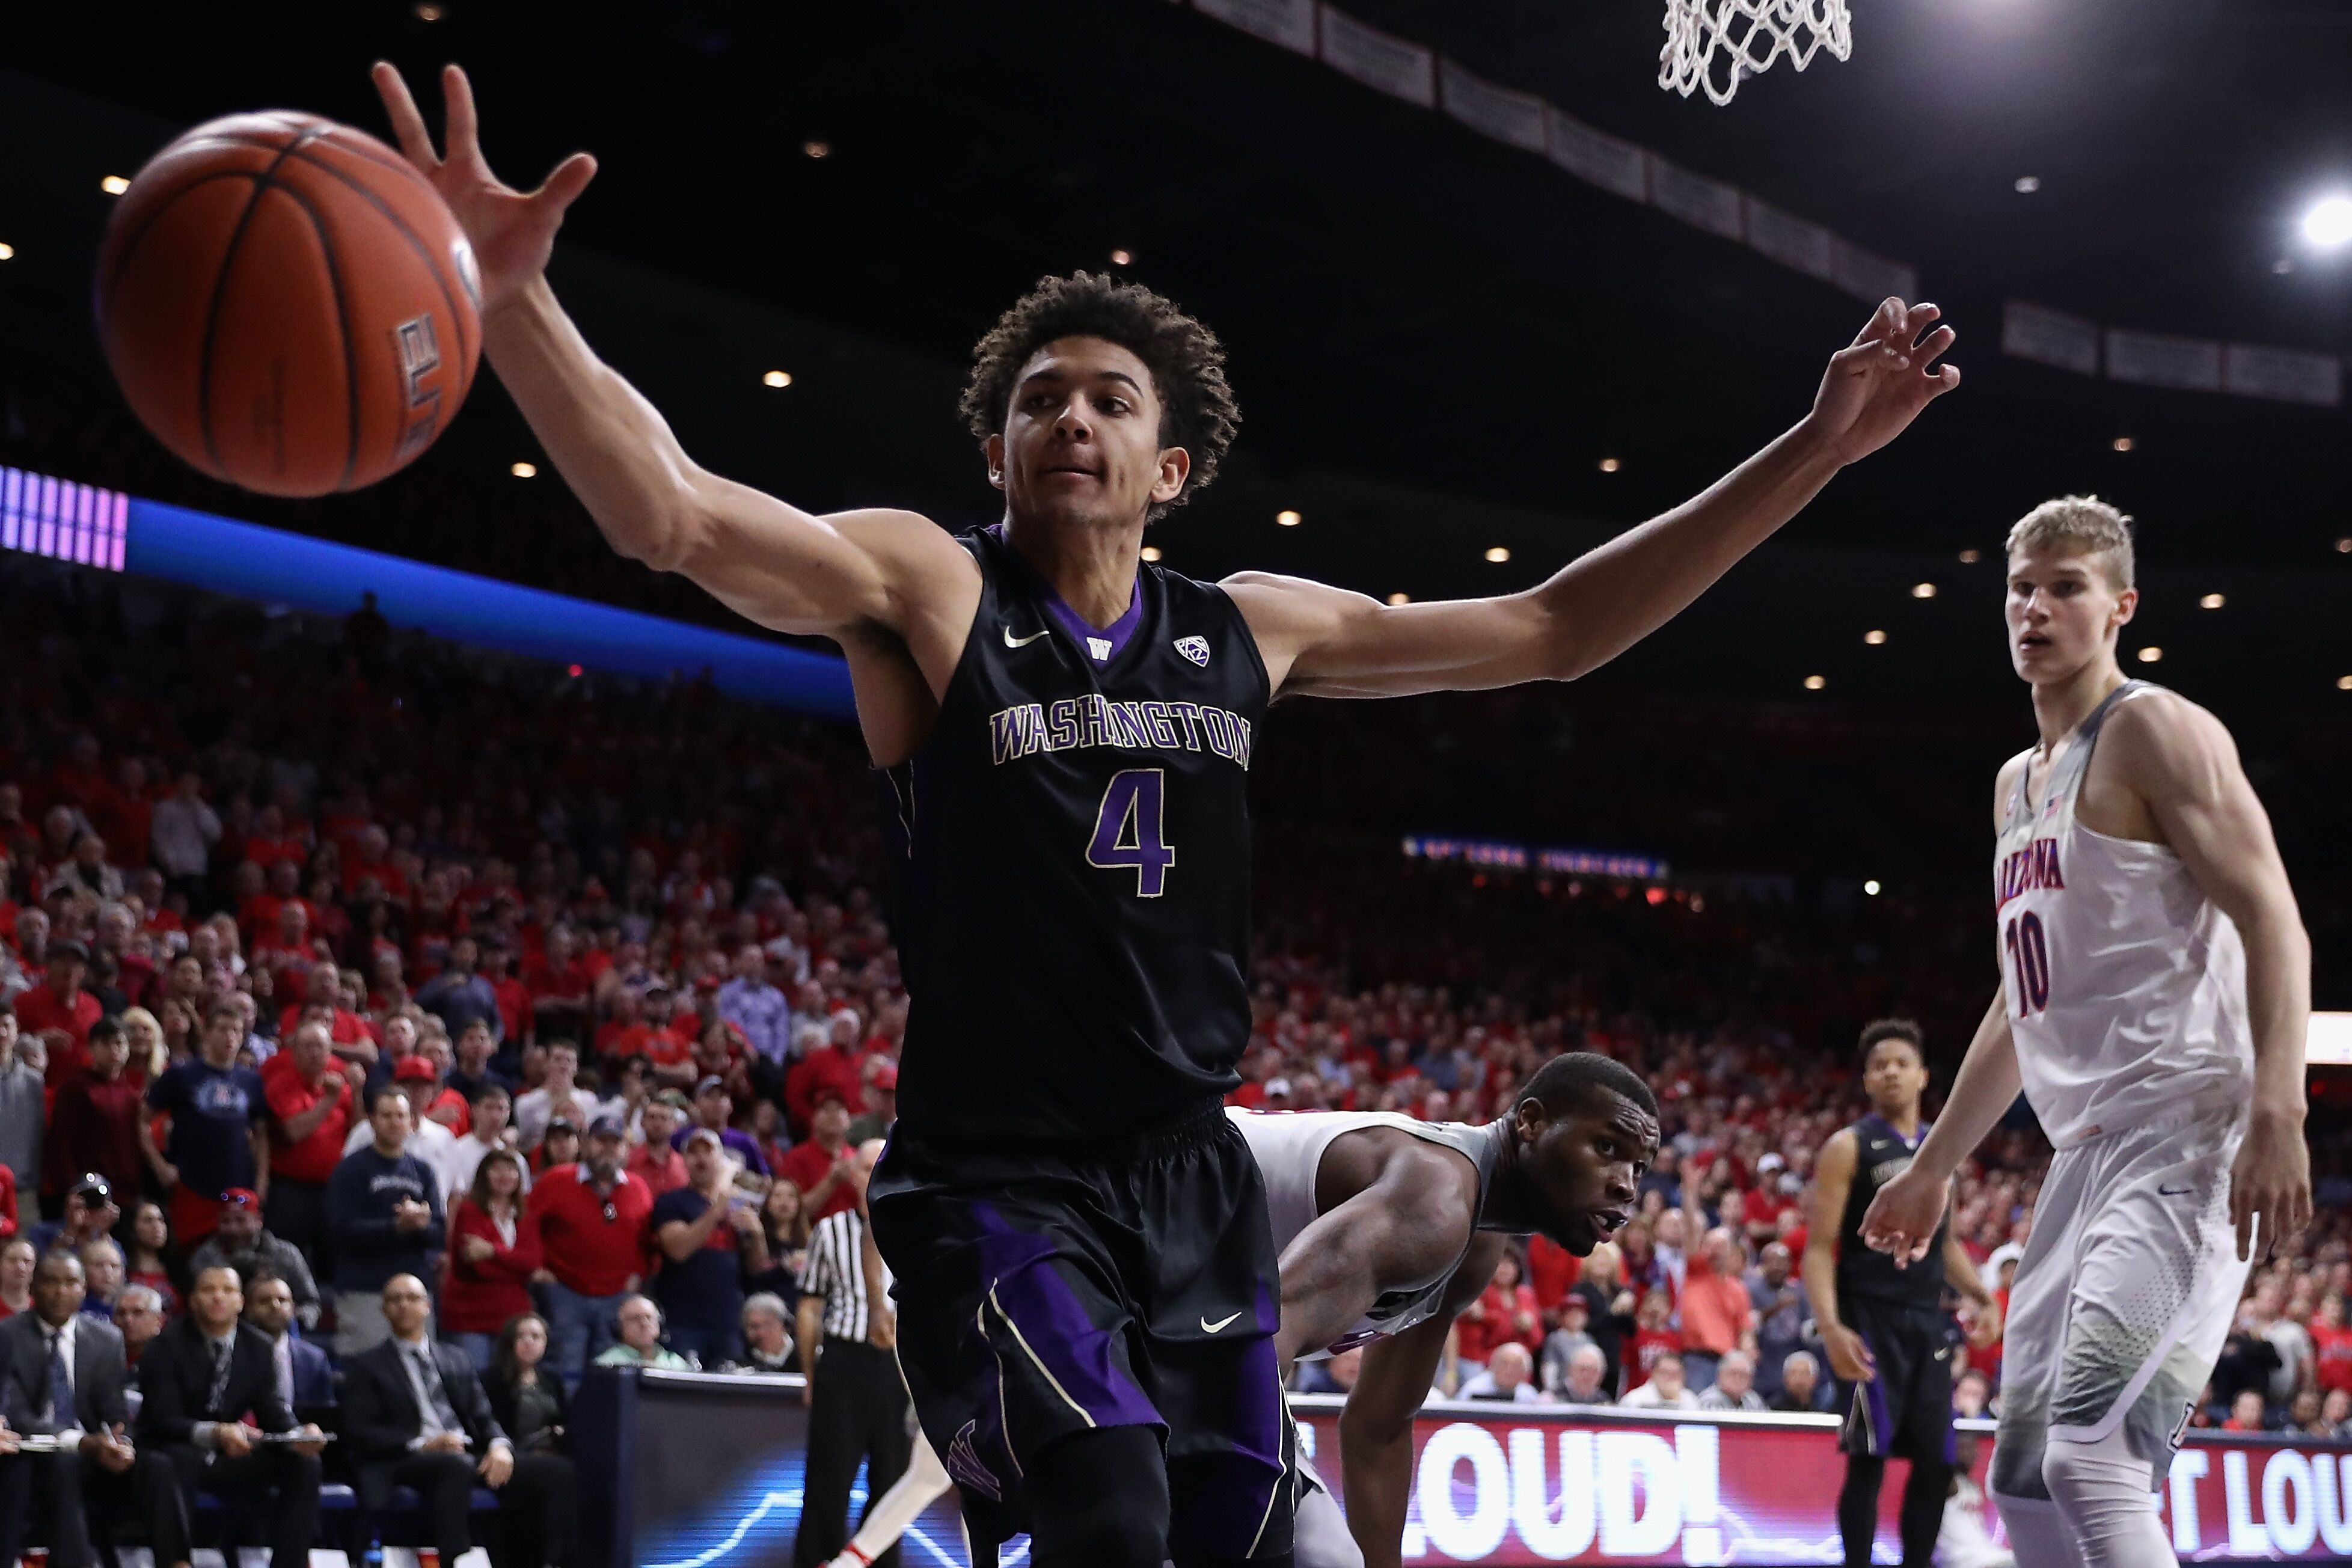 Washington Basketball gets blown out in Vegas